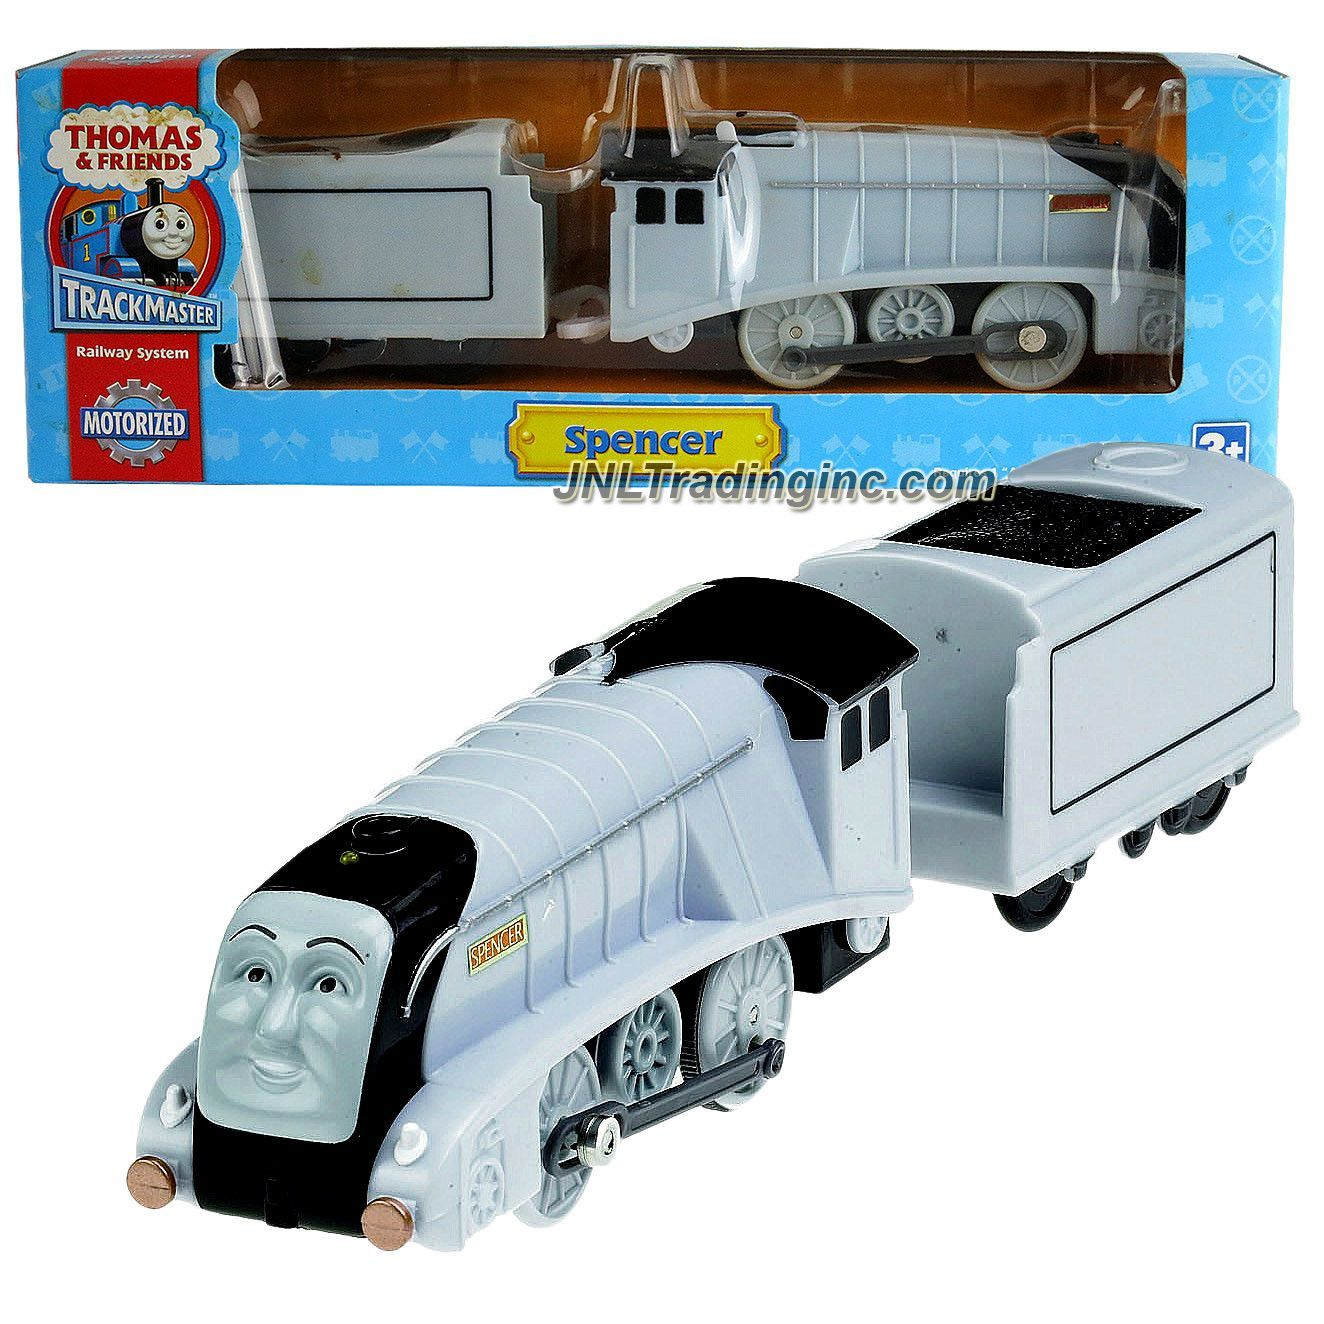 HiT Toy Thomas and Friends Trackmaster Motorized Railway 2 Pack ...